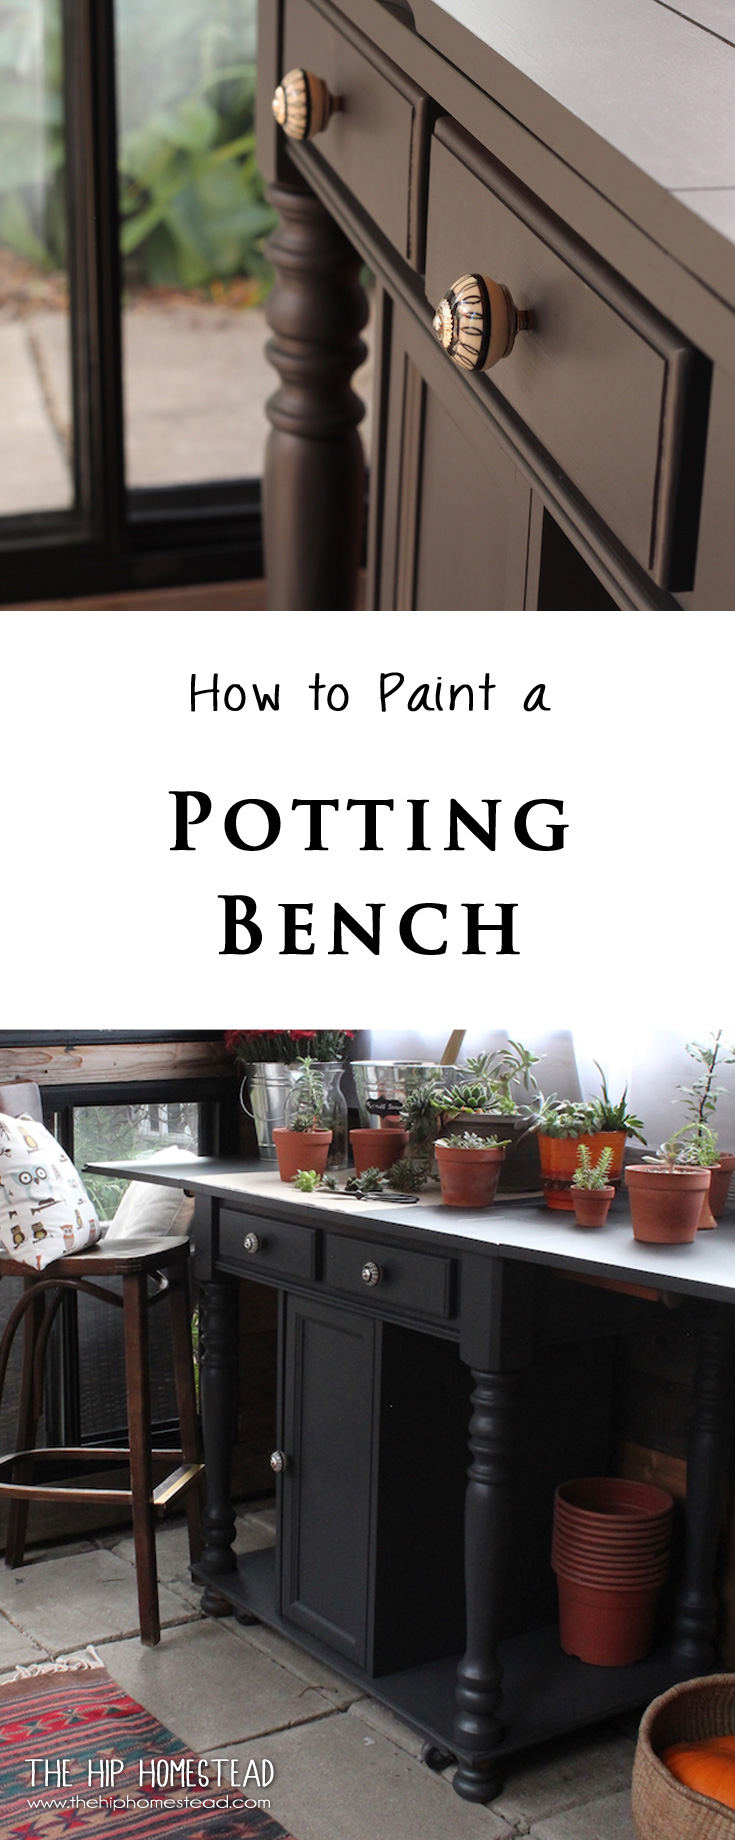 How to Paint a Potting Bench - The Hip Homestead